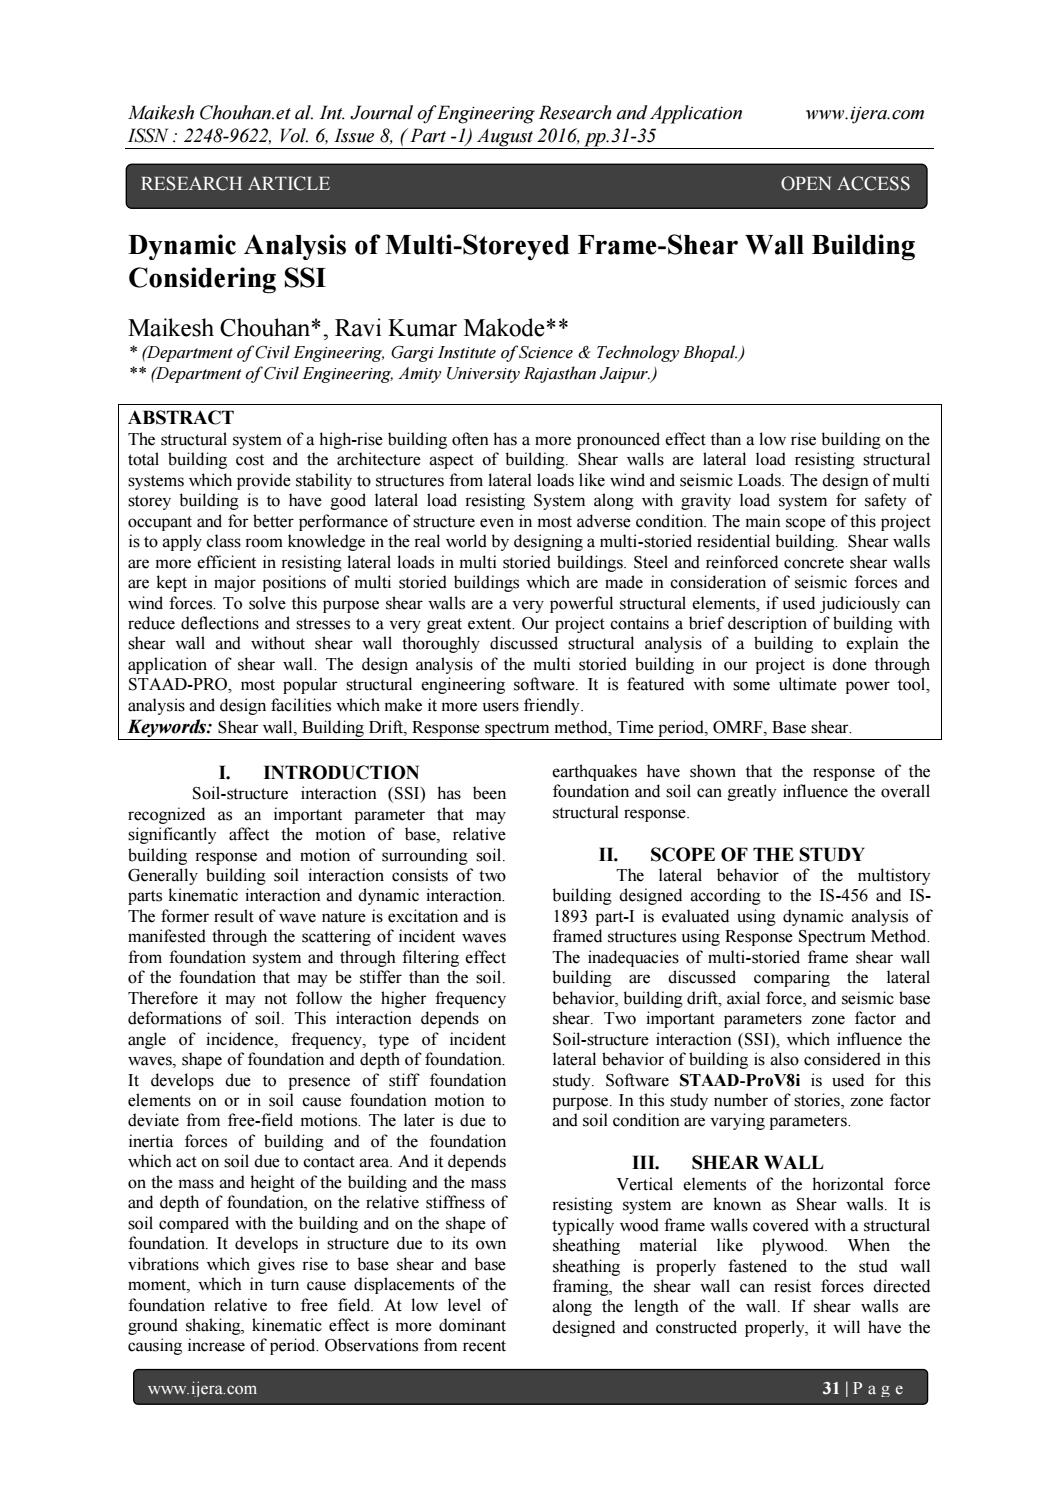 Design Of Shear Wall Using Is 13920